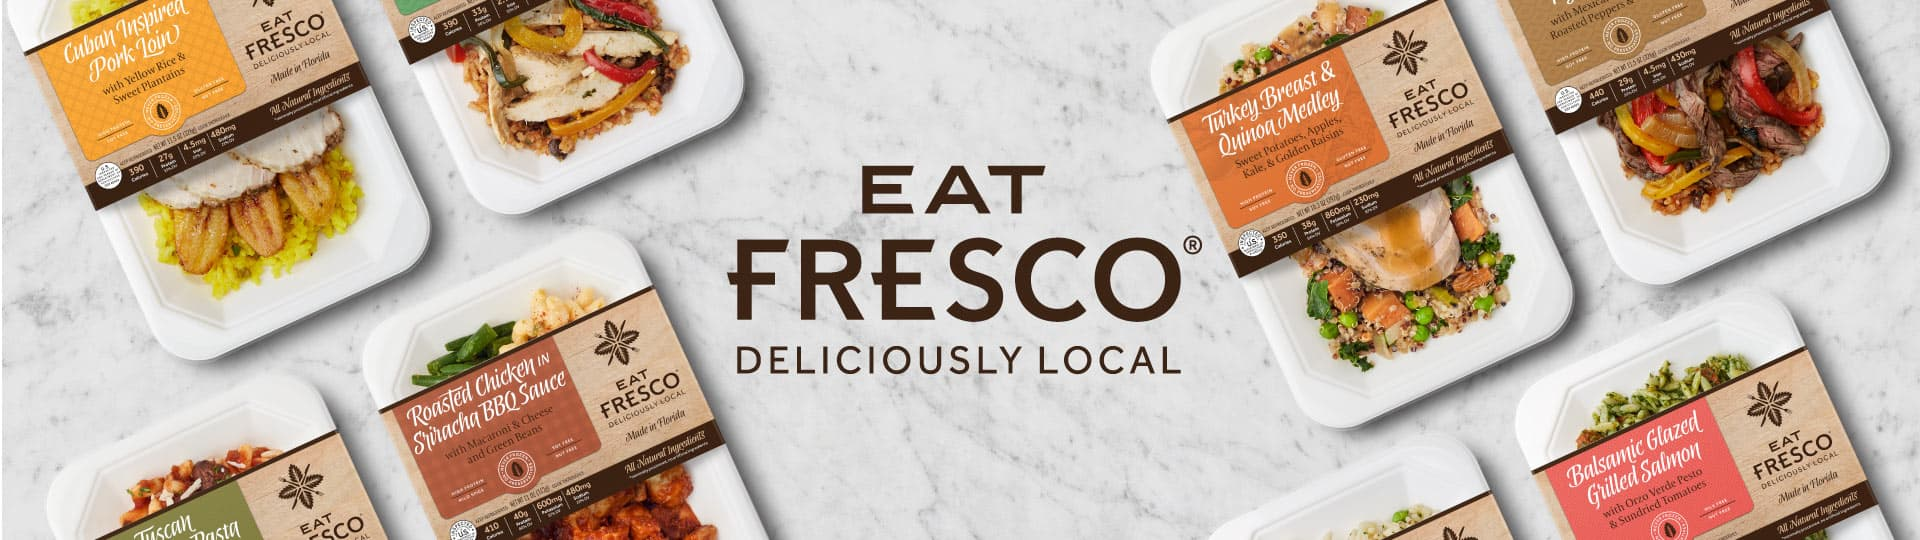 Eat Fresco - Deliciously Local - Made in Florida